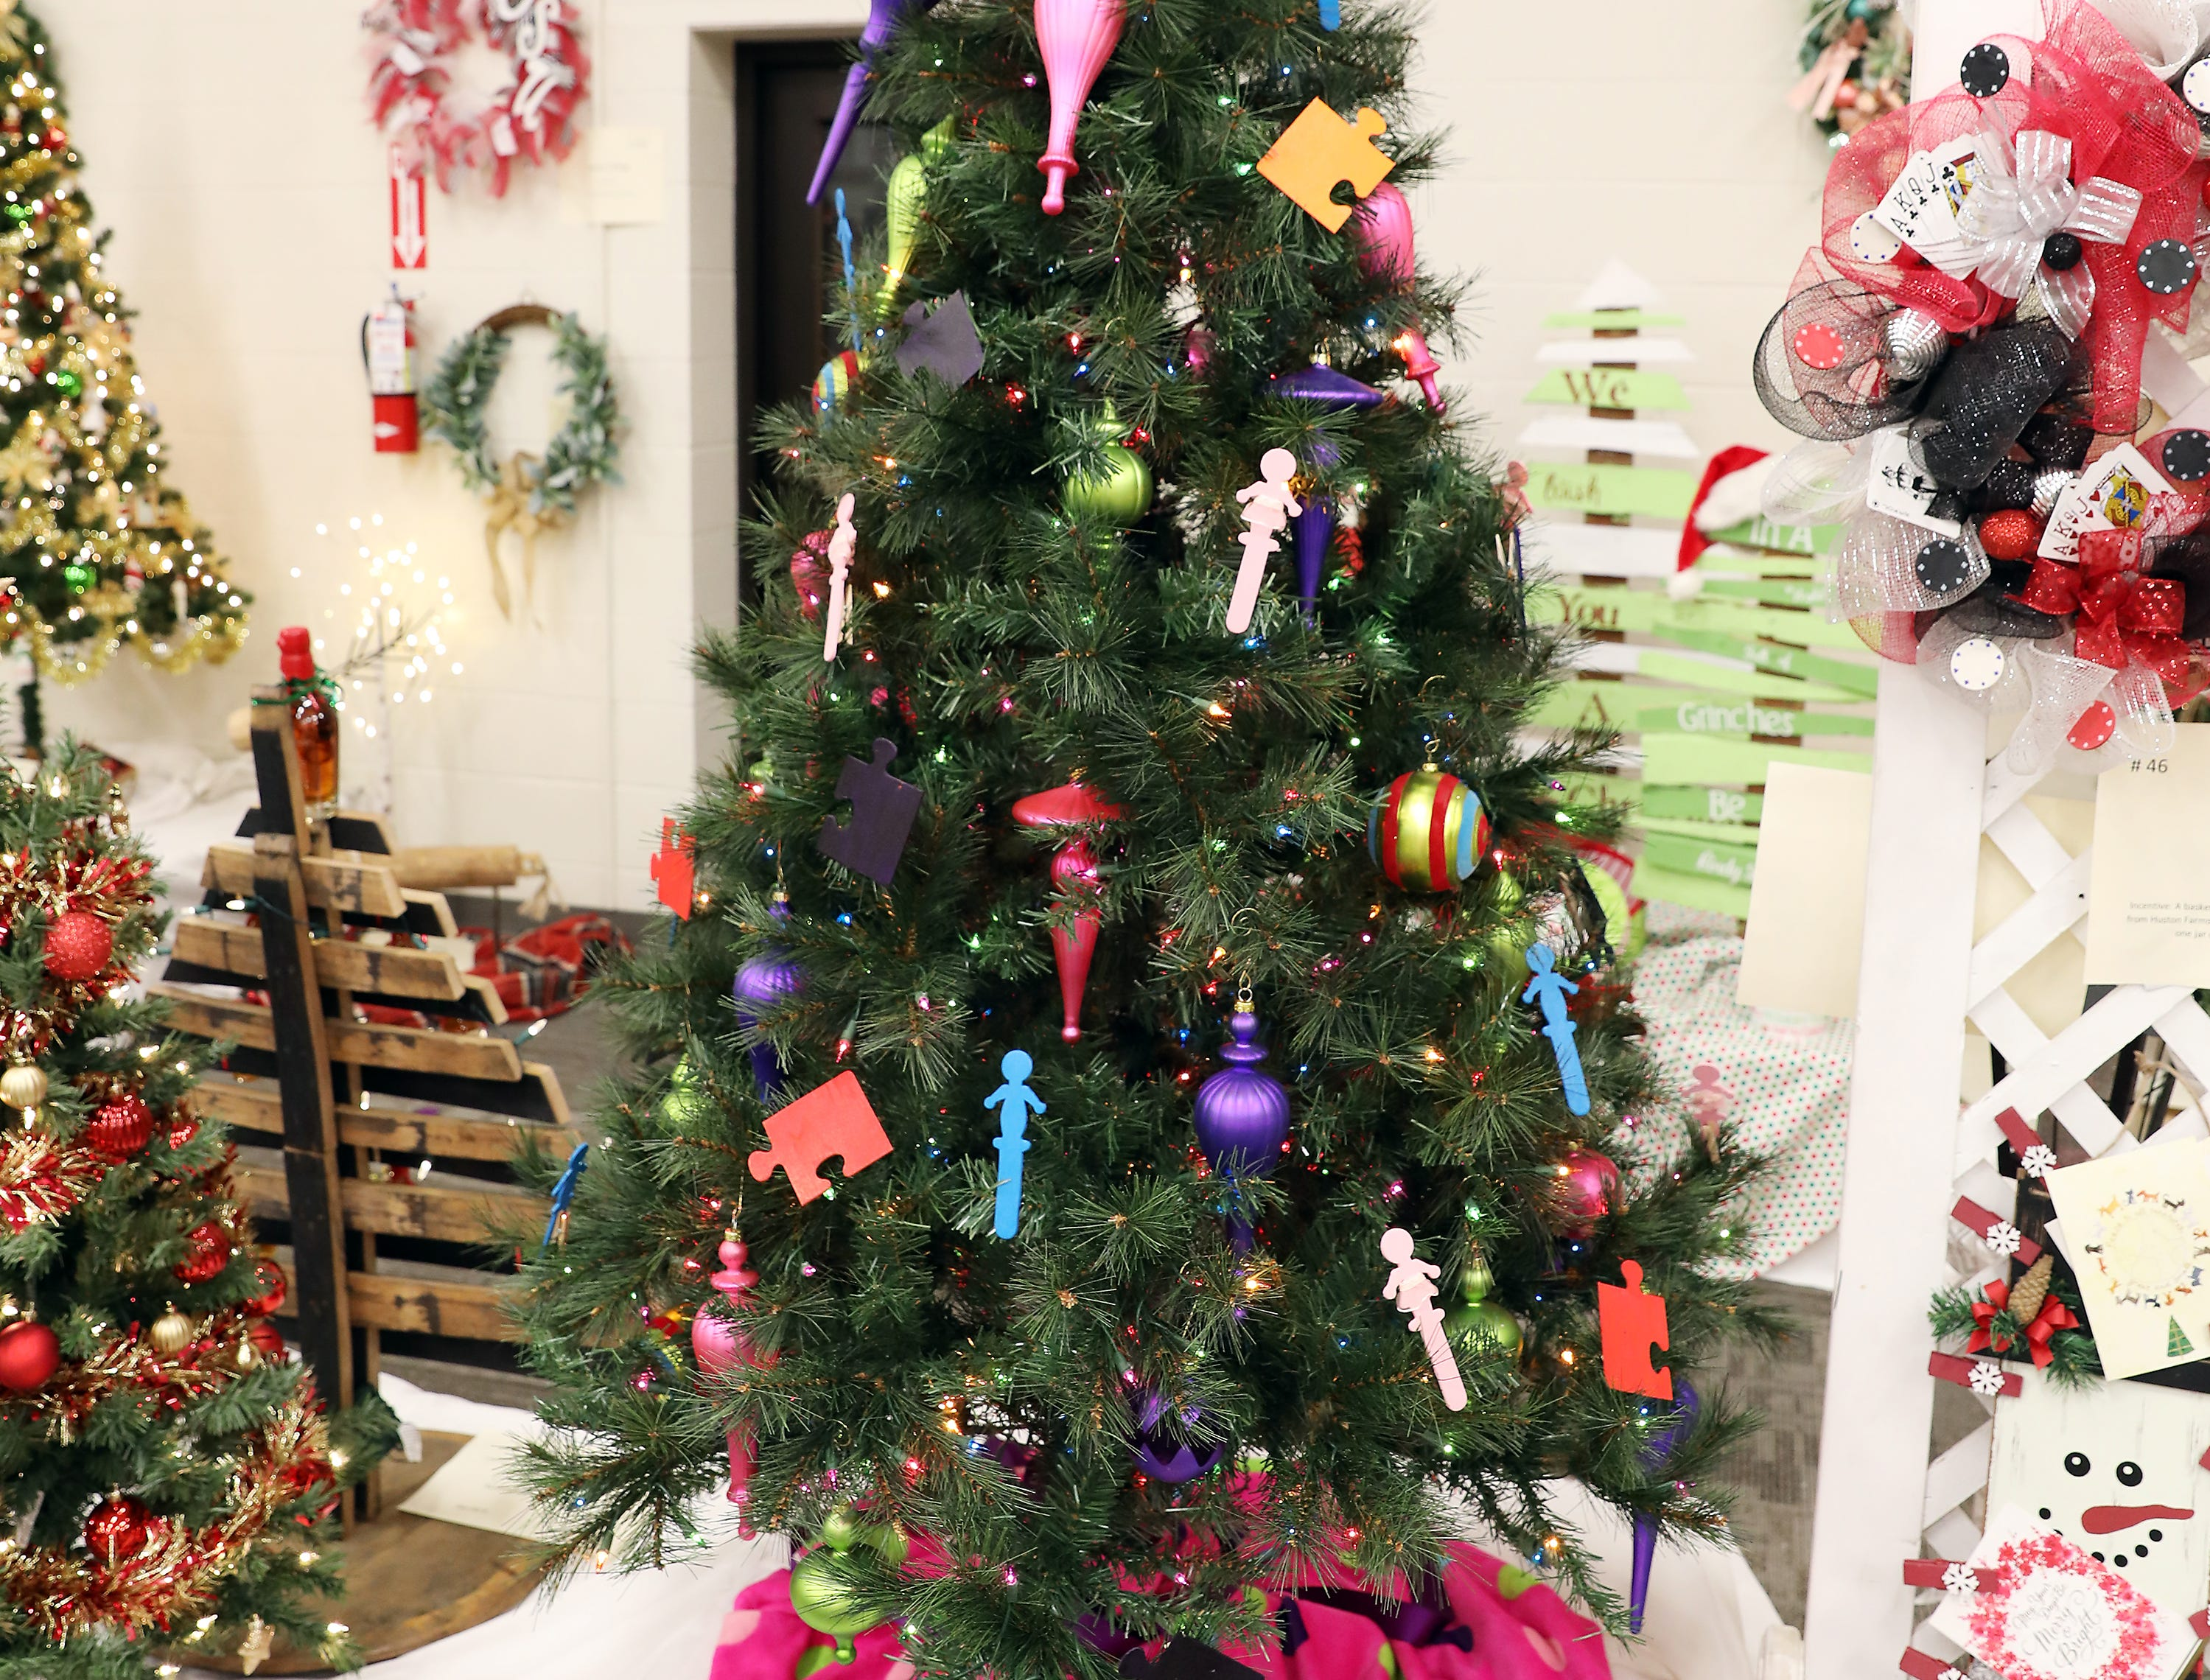 2005:00 PMCoconis FurnitureLarge TreeA Merry Christmas for Children with AutismLarge tree with striped hat as a topper, large glass ornaments in bright colors, hand painted puzzle pieces and children ornaments.$250 gift card to Coconis Furniture